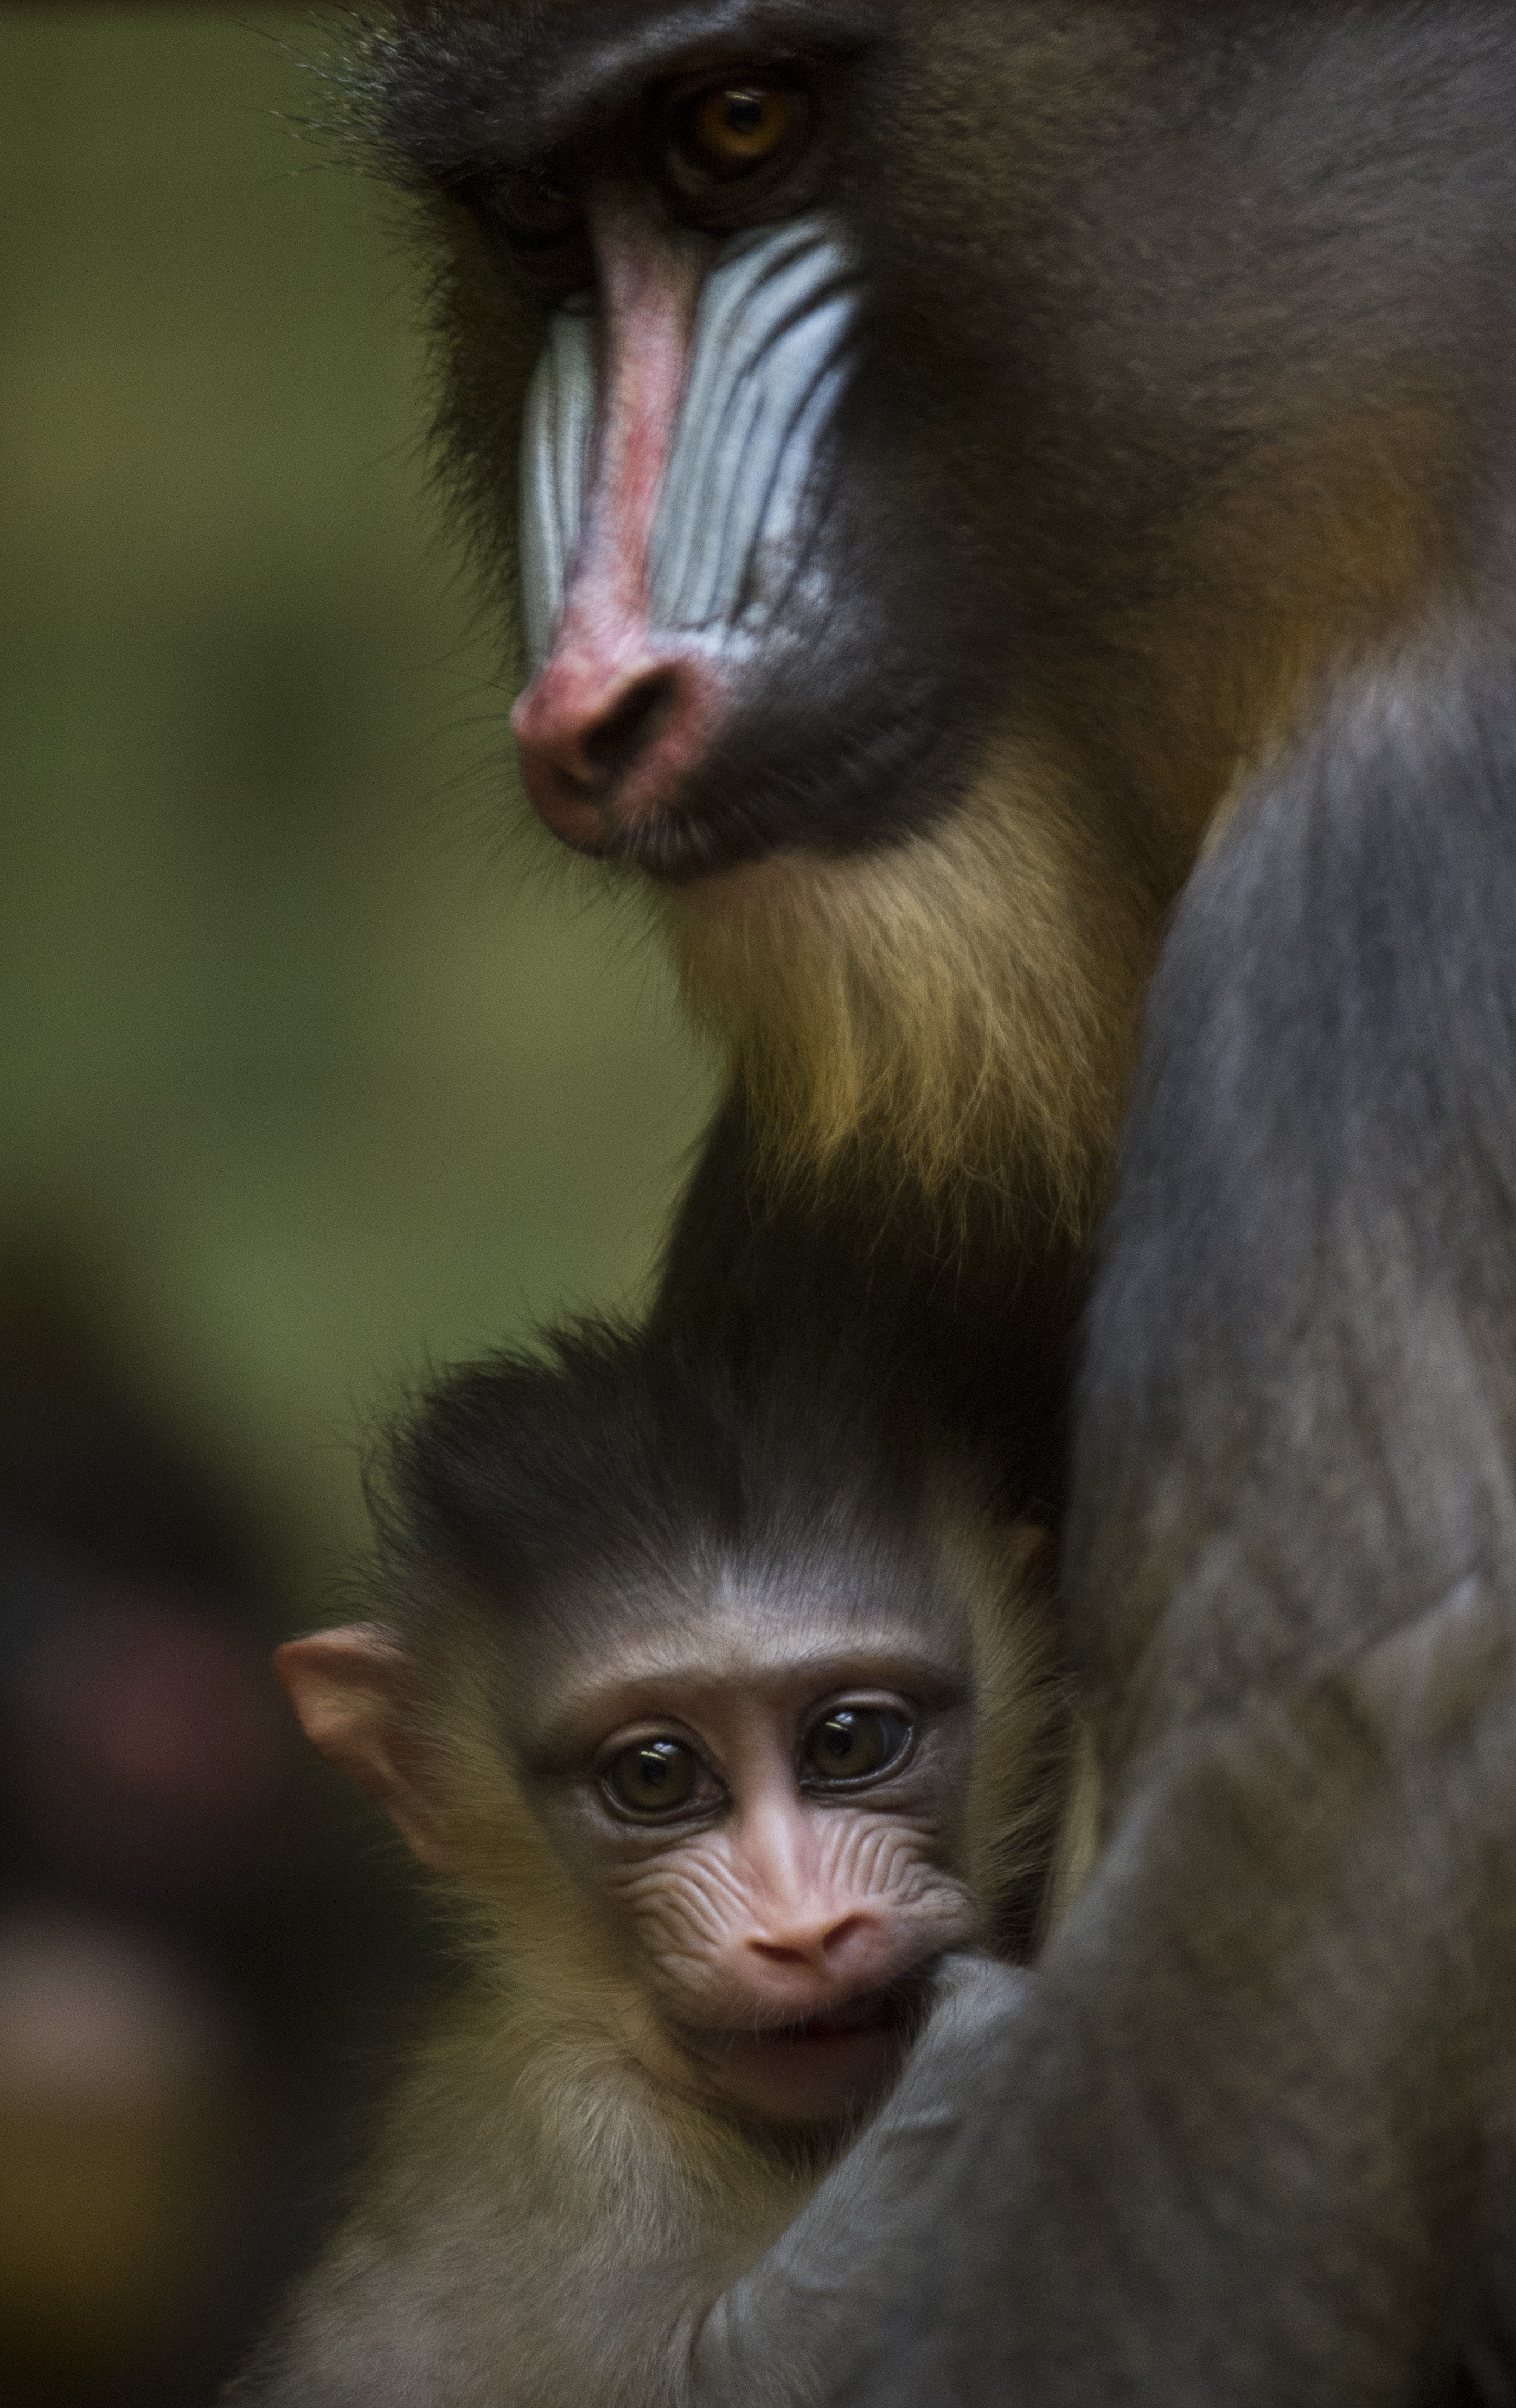 One month-old baby mandrill Aron clings to his mother Sandra in their cage at Berlin's Zoologischer Garten zoo on September 28, 2012.